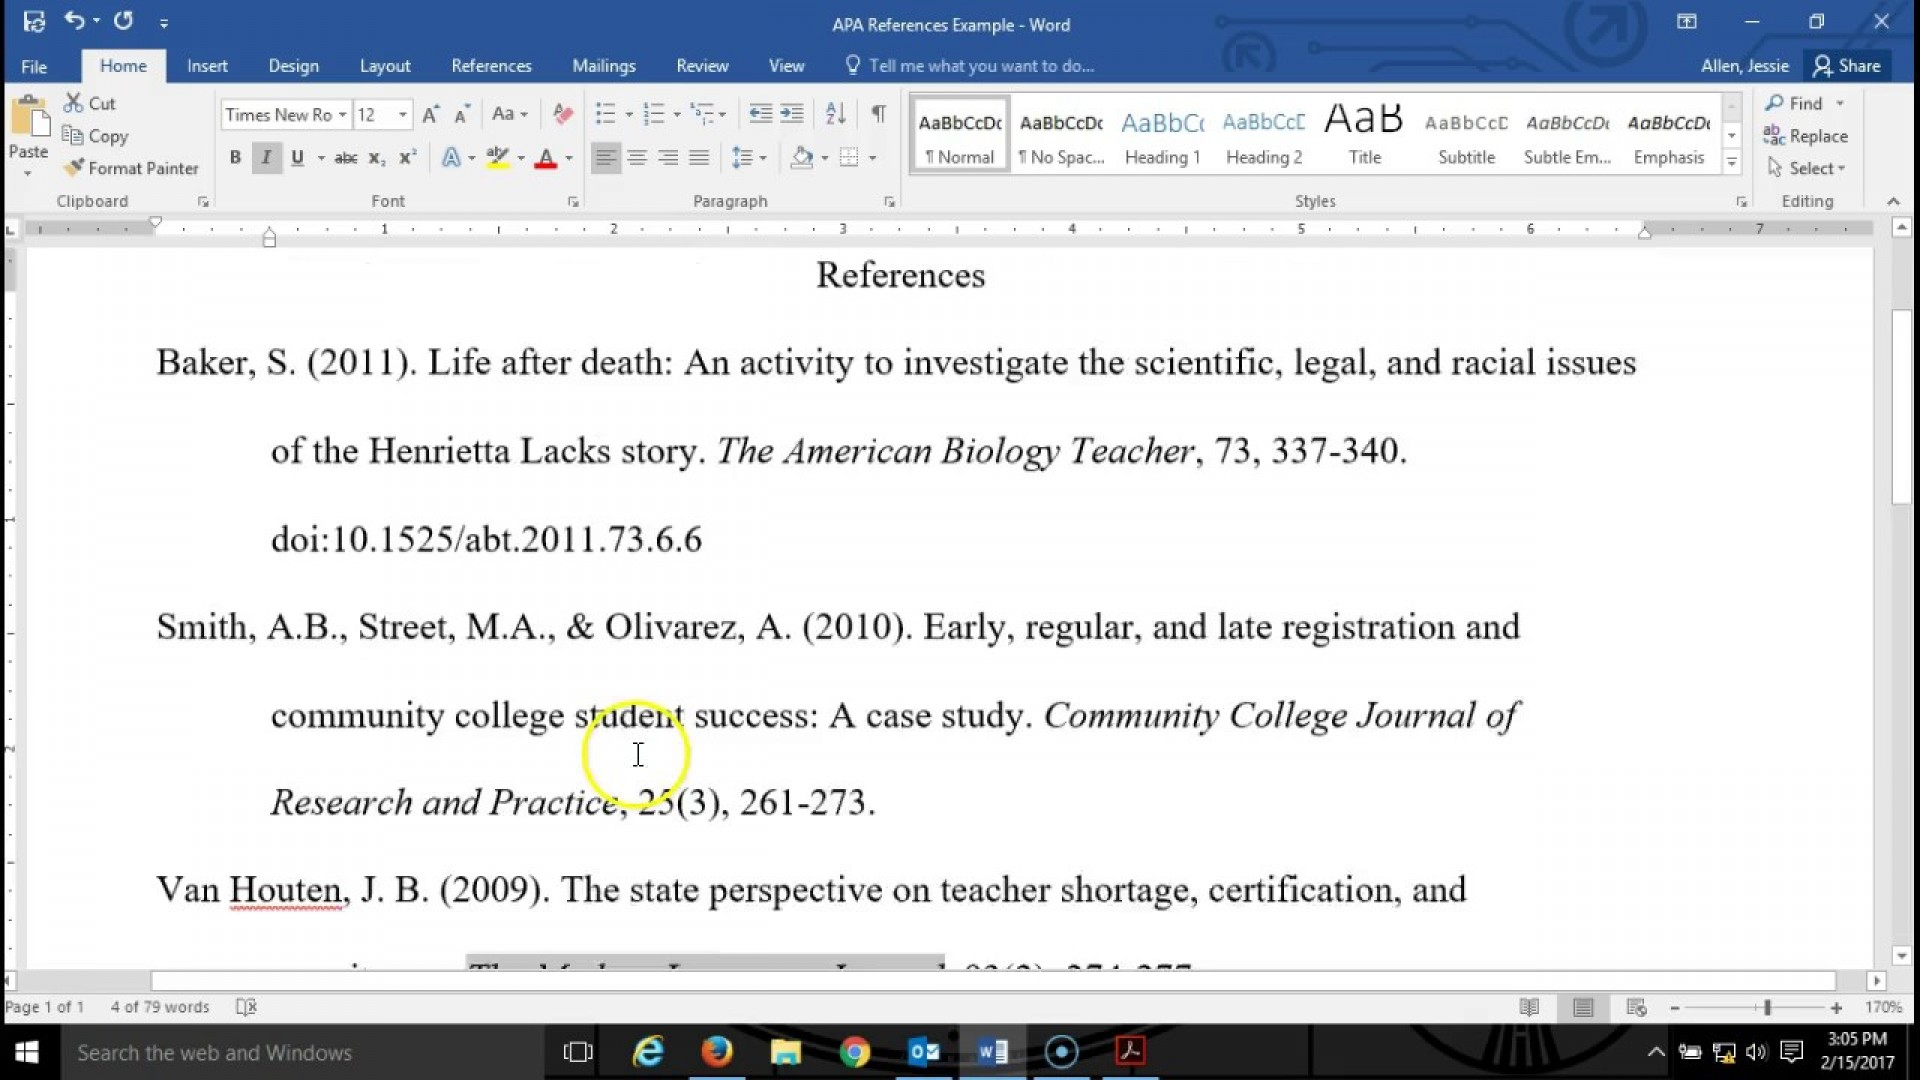 012 Maxresdefault Research Paper How To Cite Sources In Apa Magnificent A Style 1920